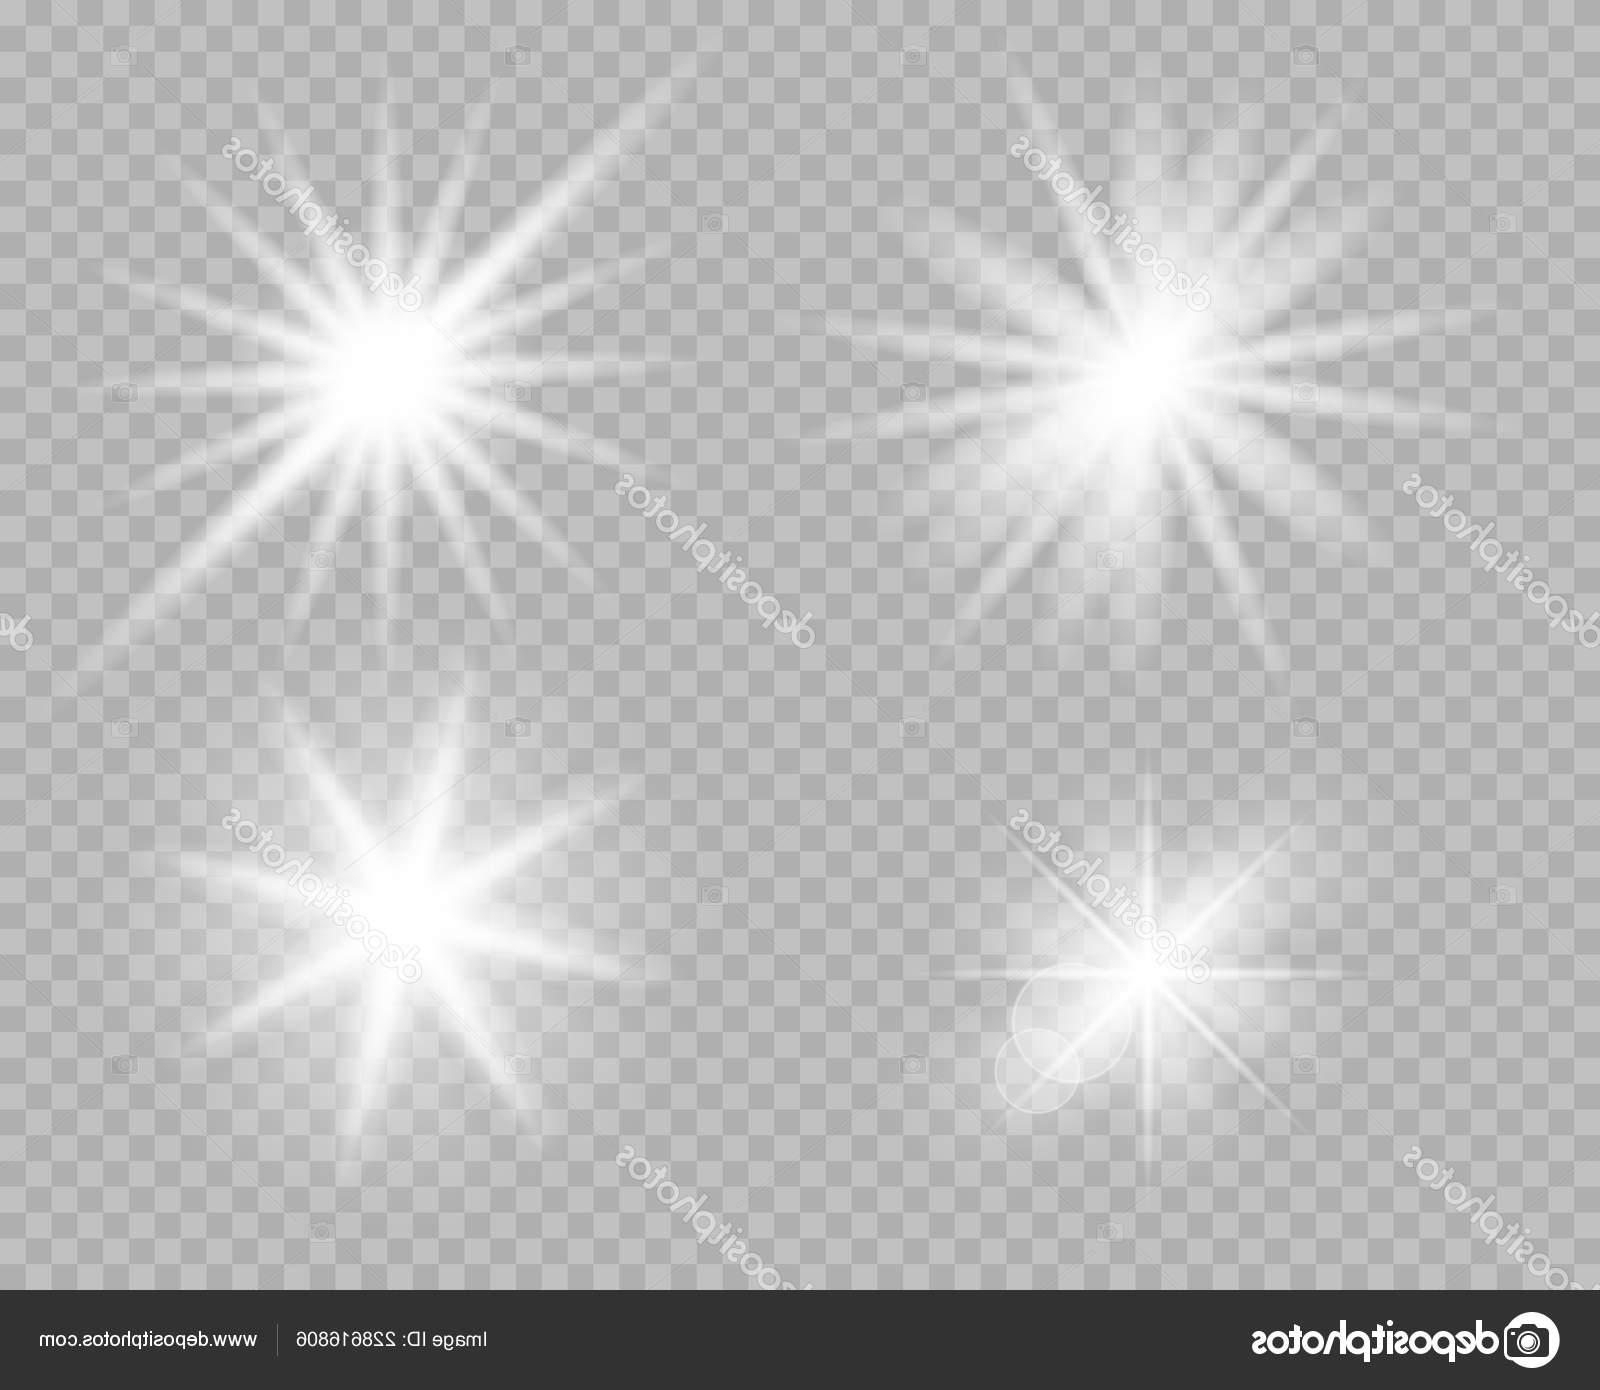 graphic transparent download Best transparent images design. Shine vector